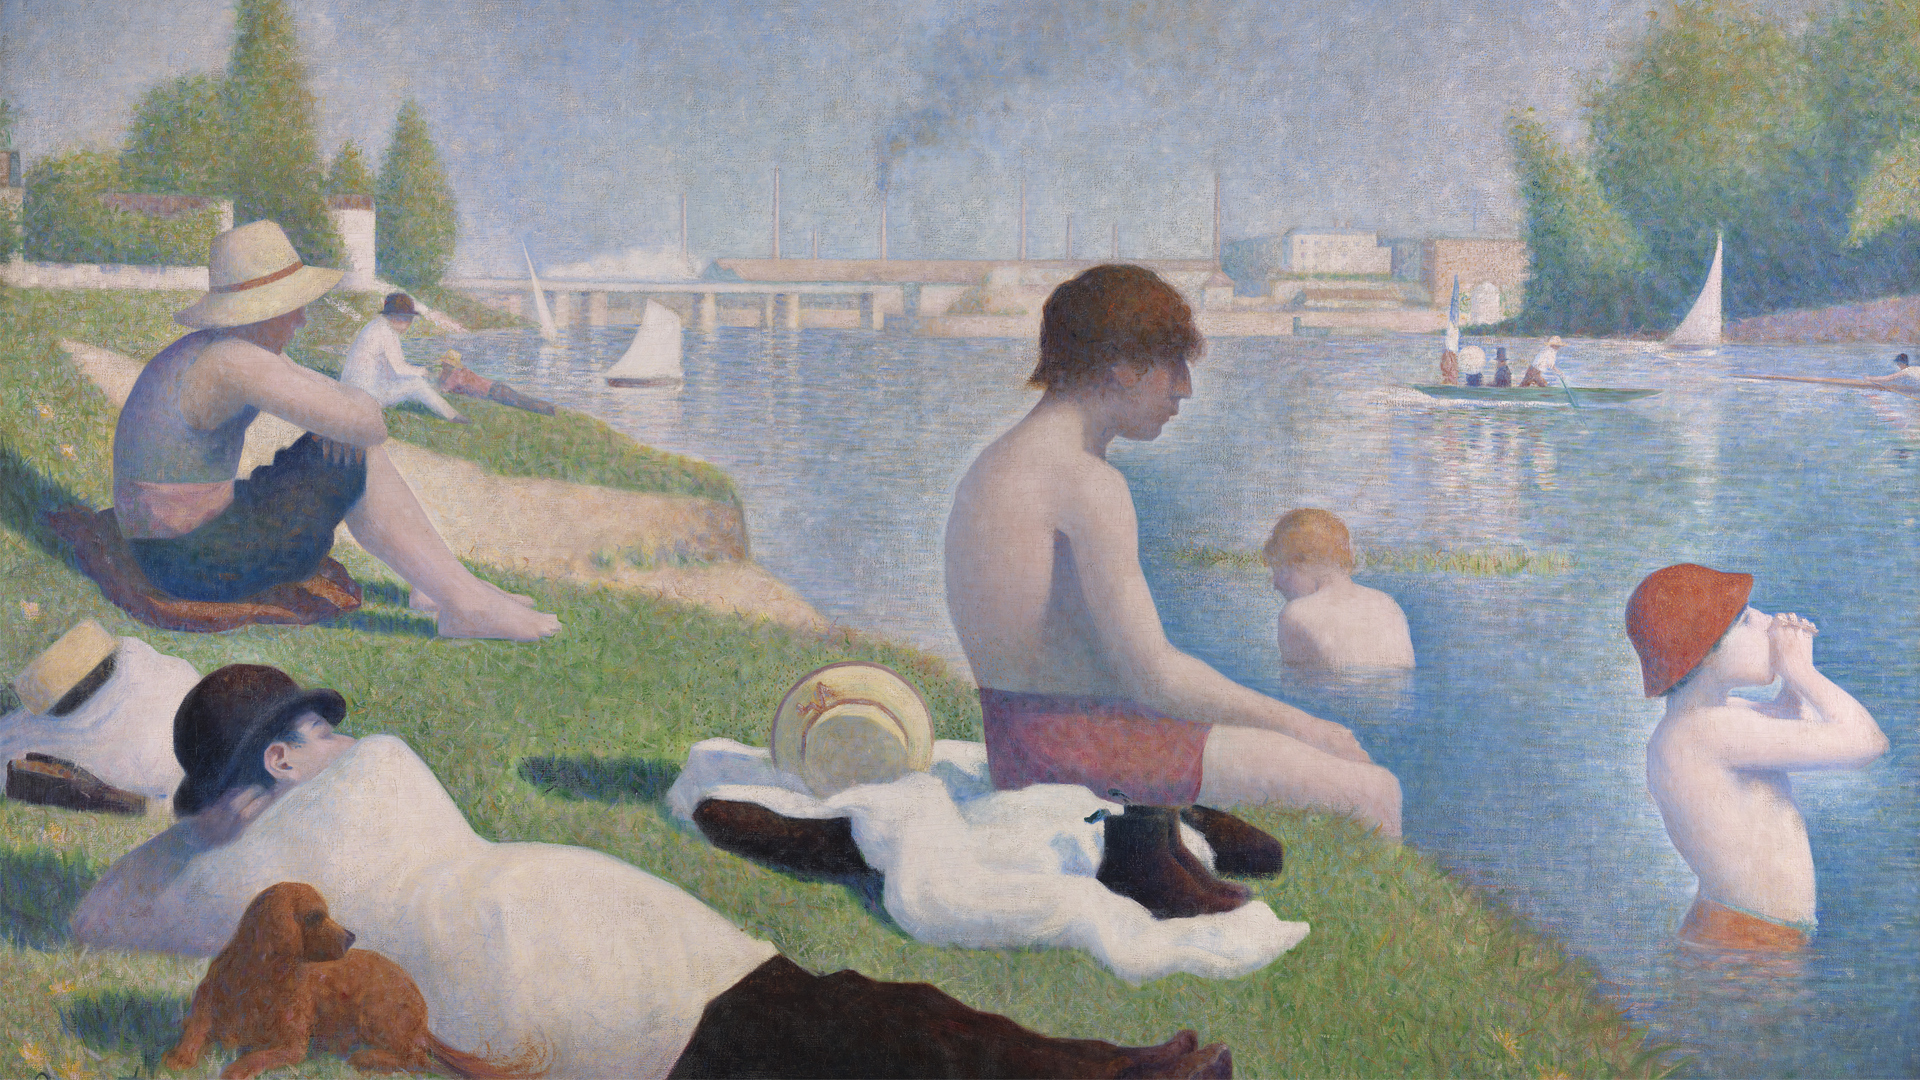 NG3908 - Georges Seurat. Bathers at Asnières. 1884. © The National Gallery, London